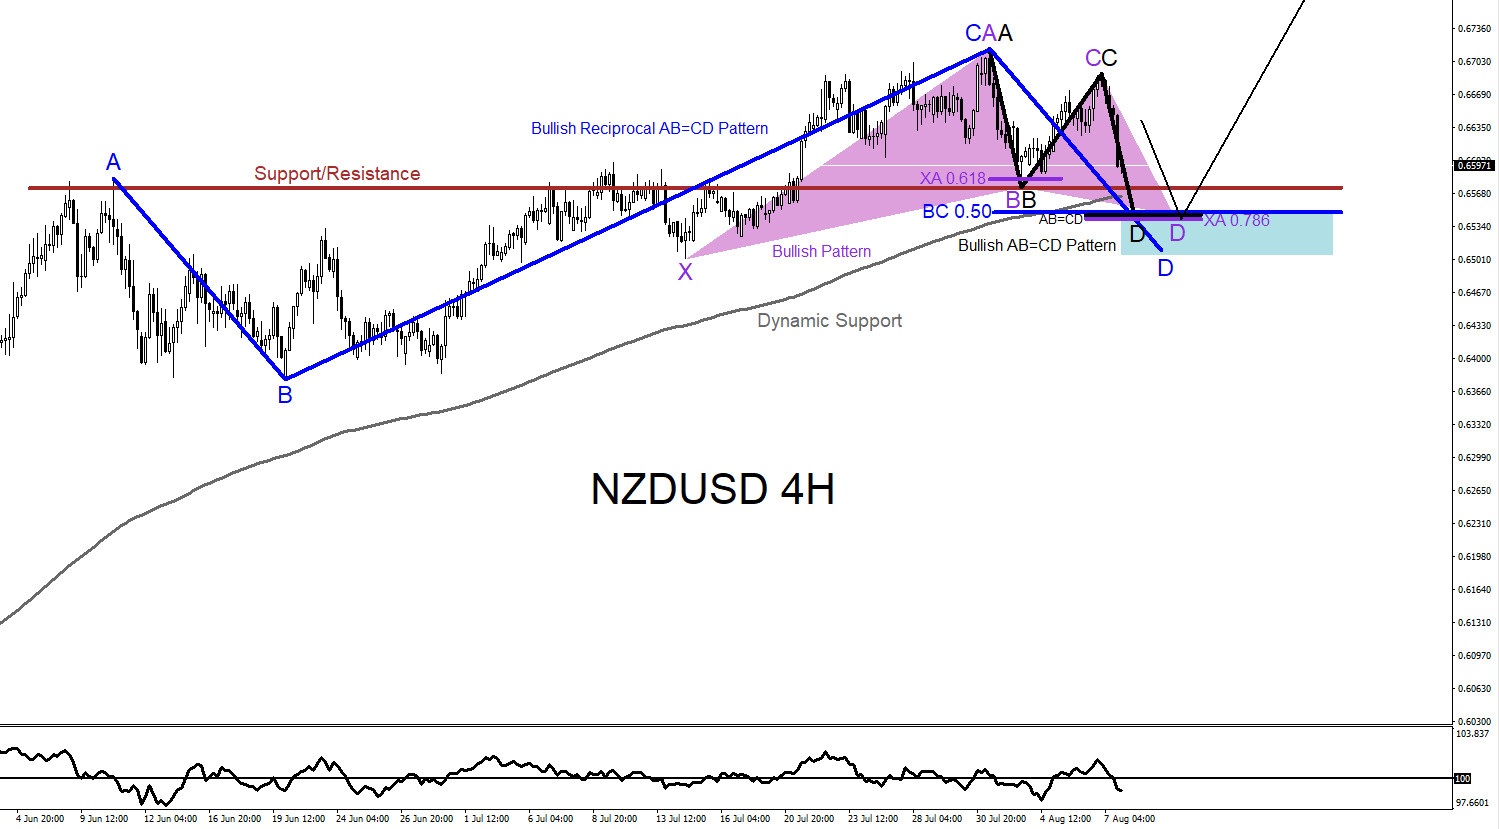 NZDUSD, forex, trading, elliottwave, technical analysis, bullish patterns, @AidanFX, AidanFX